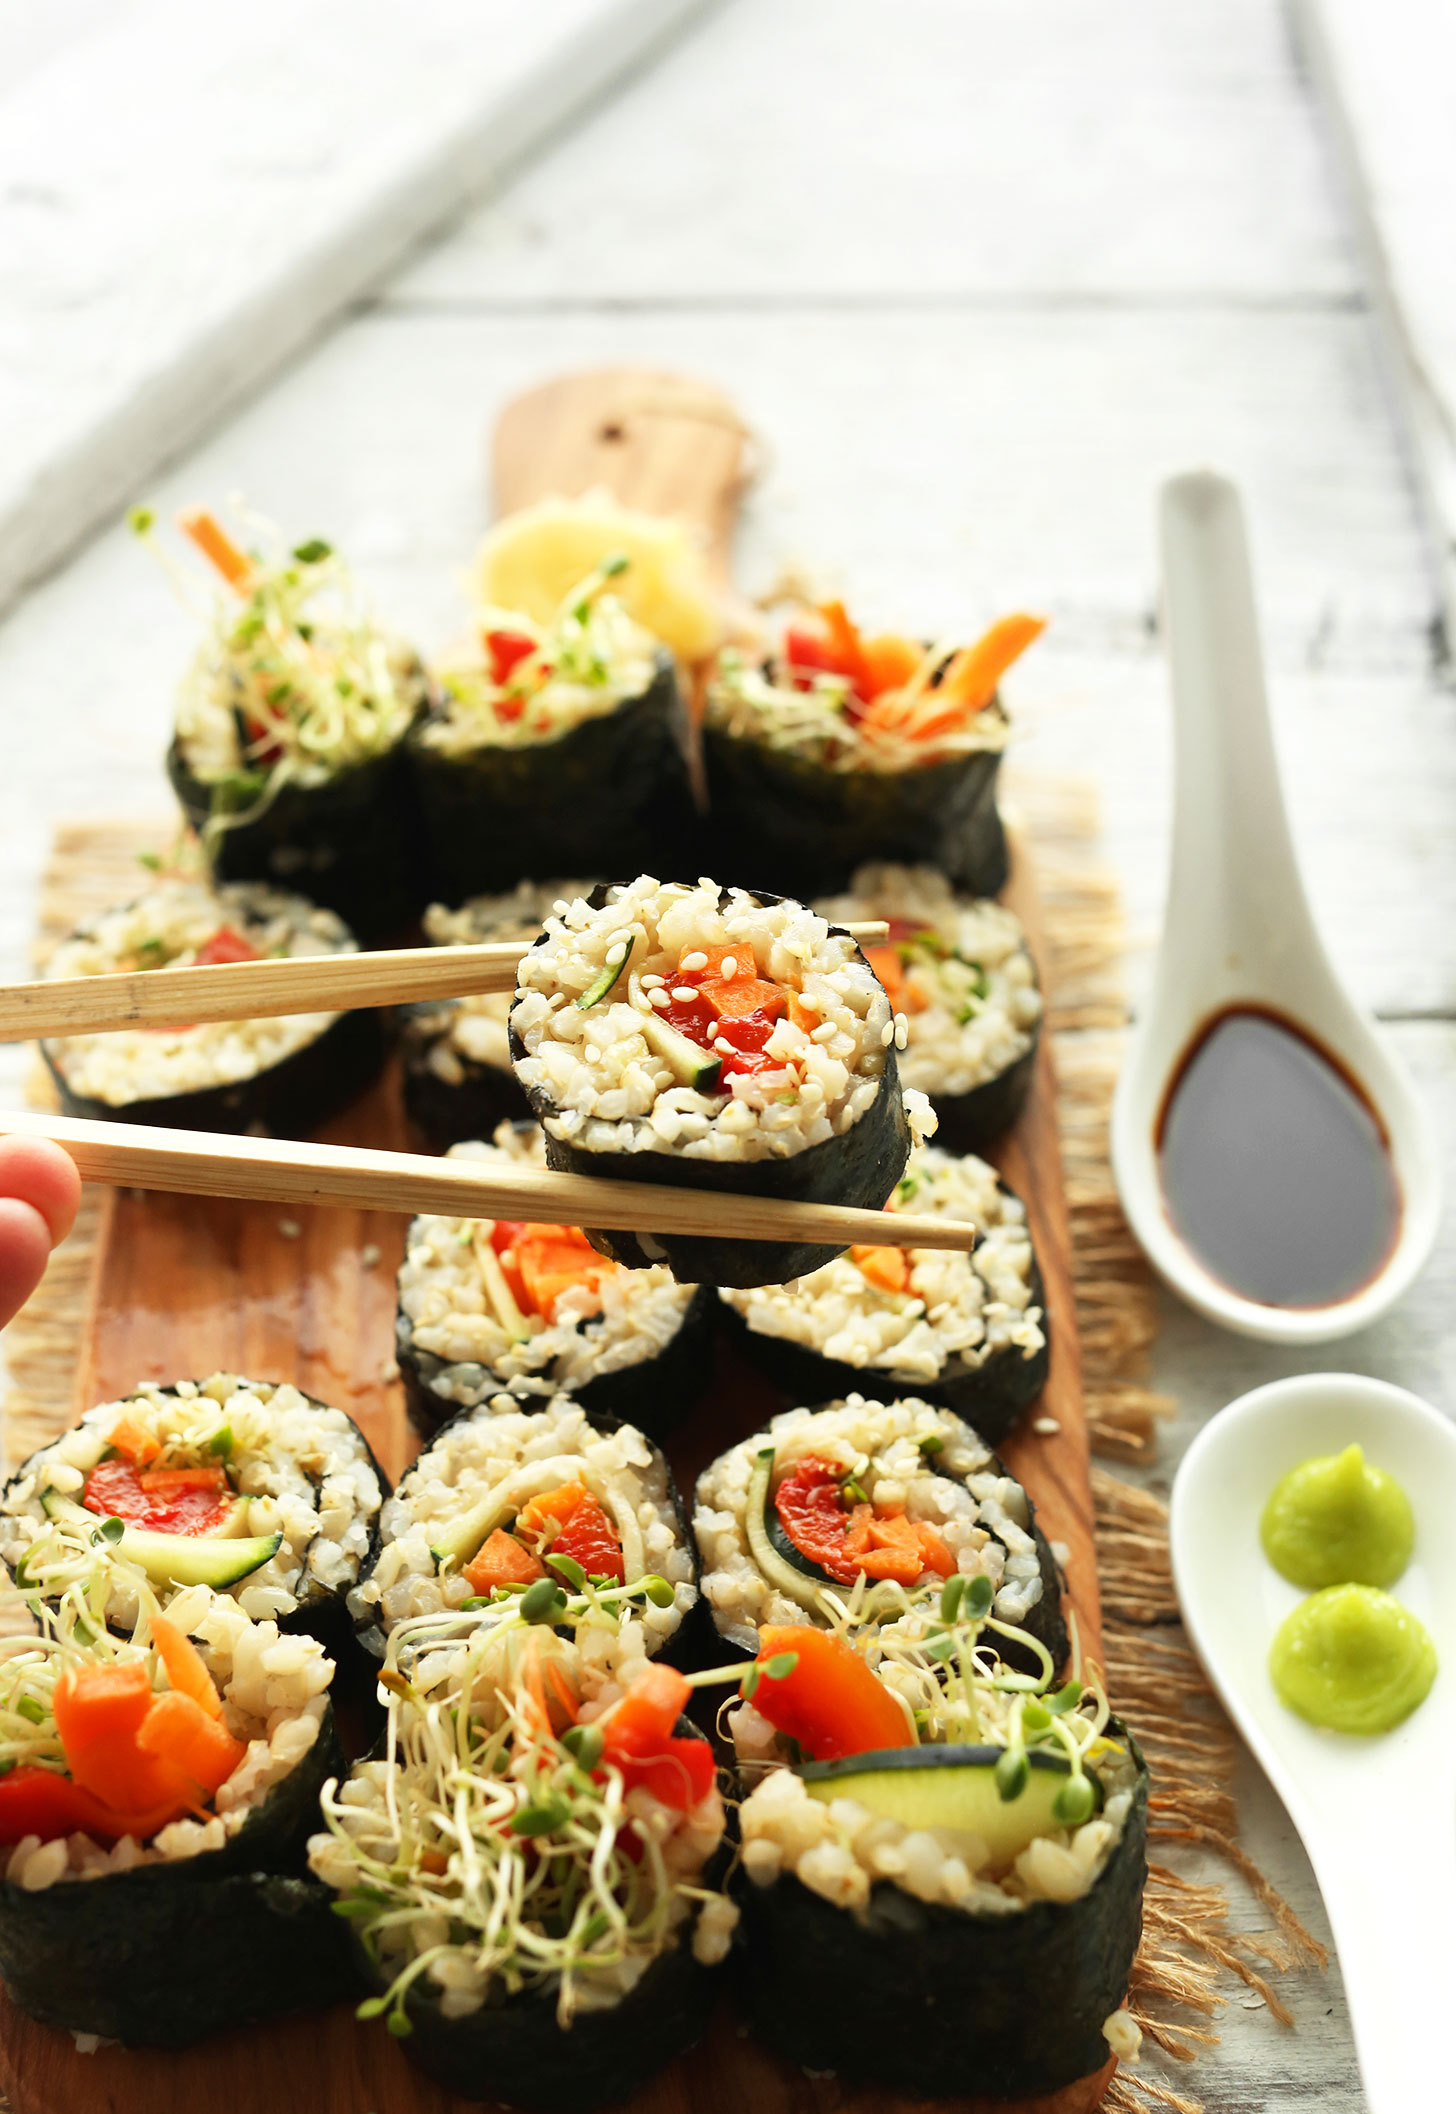 Using chopsticks to pick up a roll of our Vegan Brown Rice Sushi